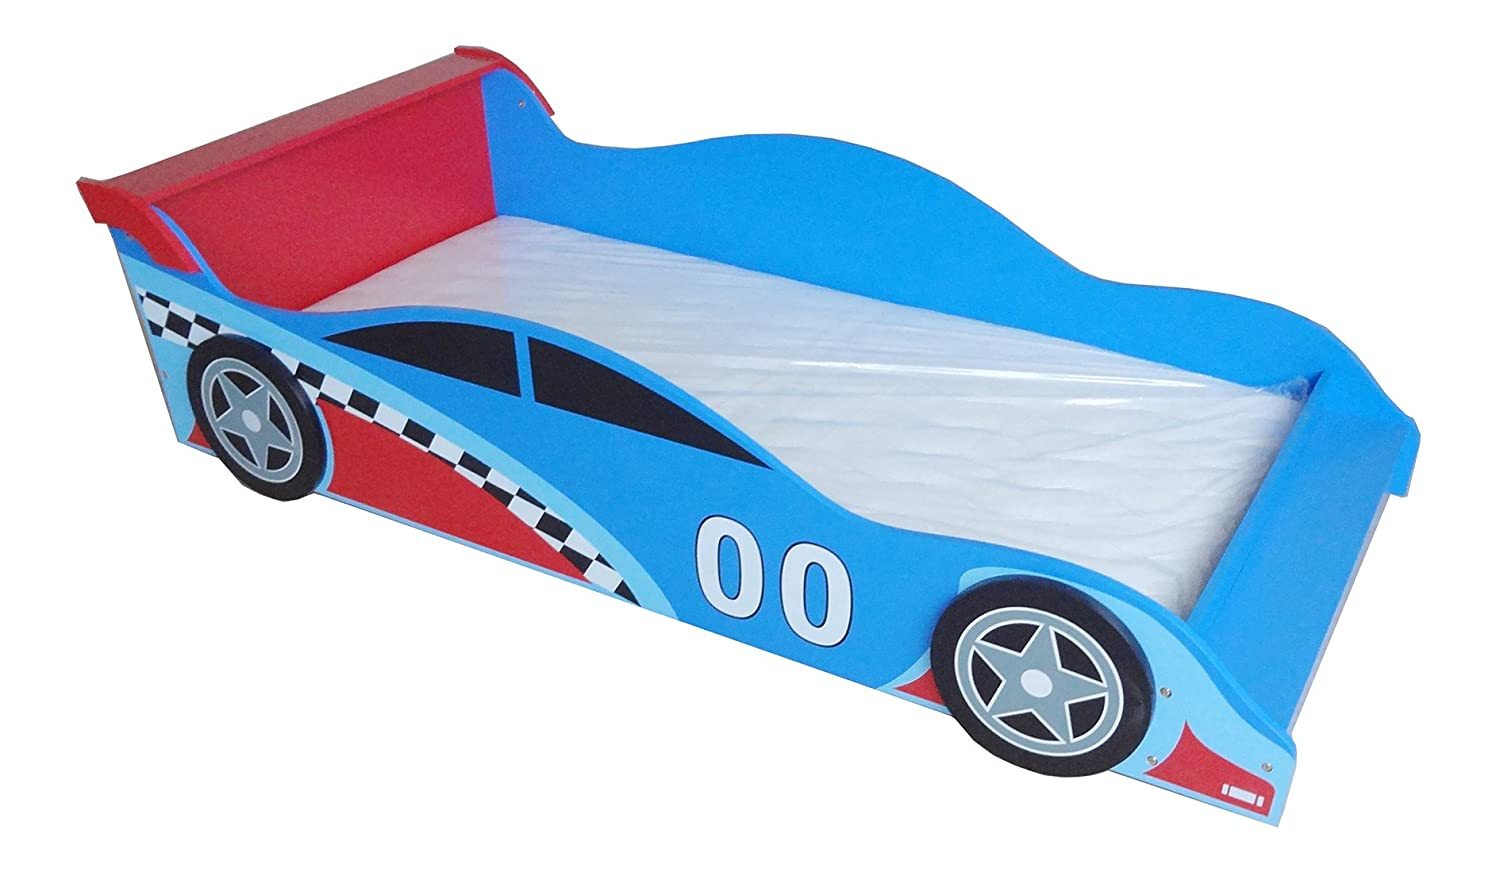 Kiddi Style Children's Racing Car Wooden Junior Bed Bebe Style CFJB7334 -Blue/Red